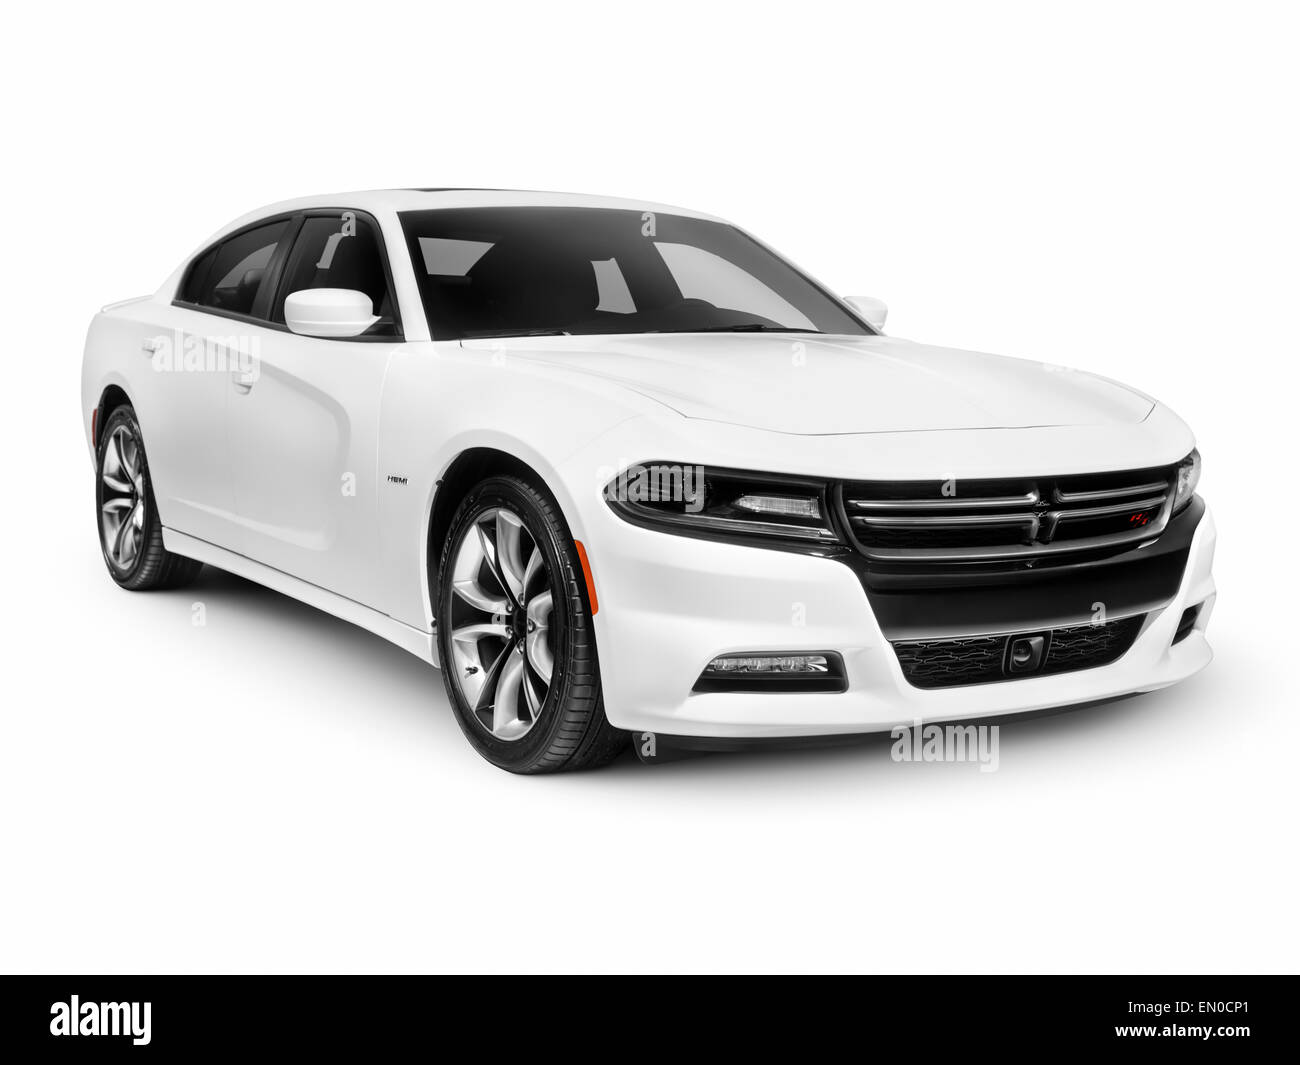 White 2015 Dodge Charger RT Road and Track sports car isolated on white background with clipping path - Stock Image